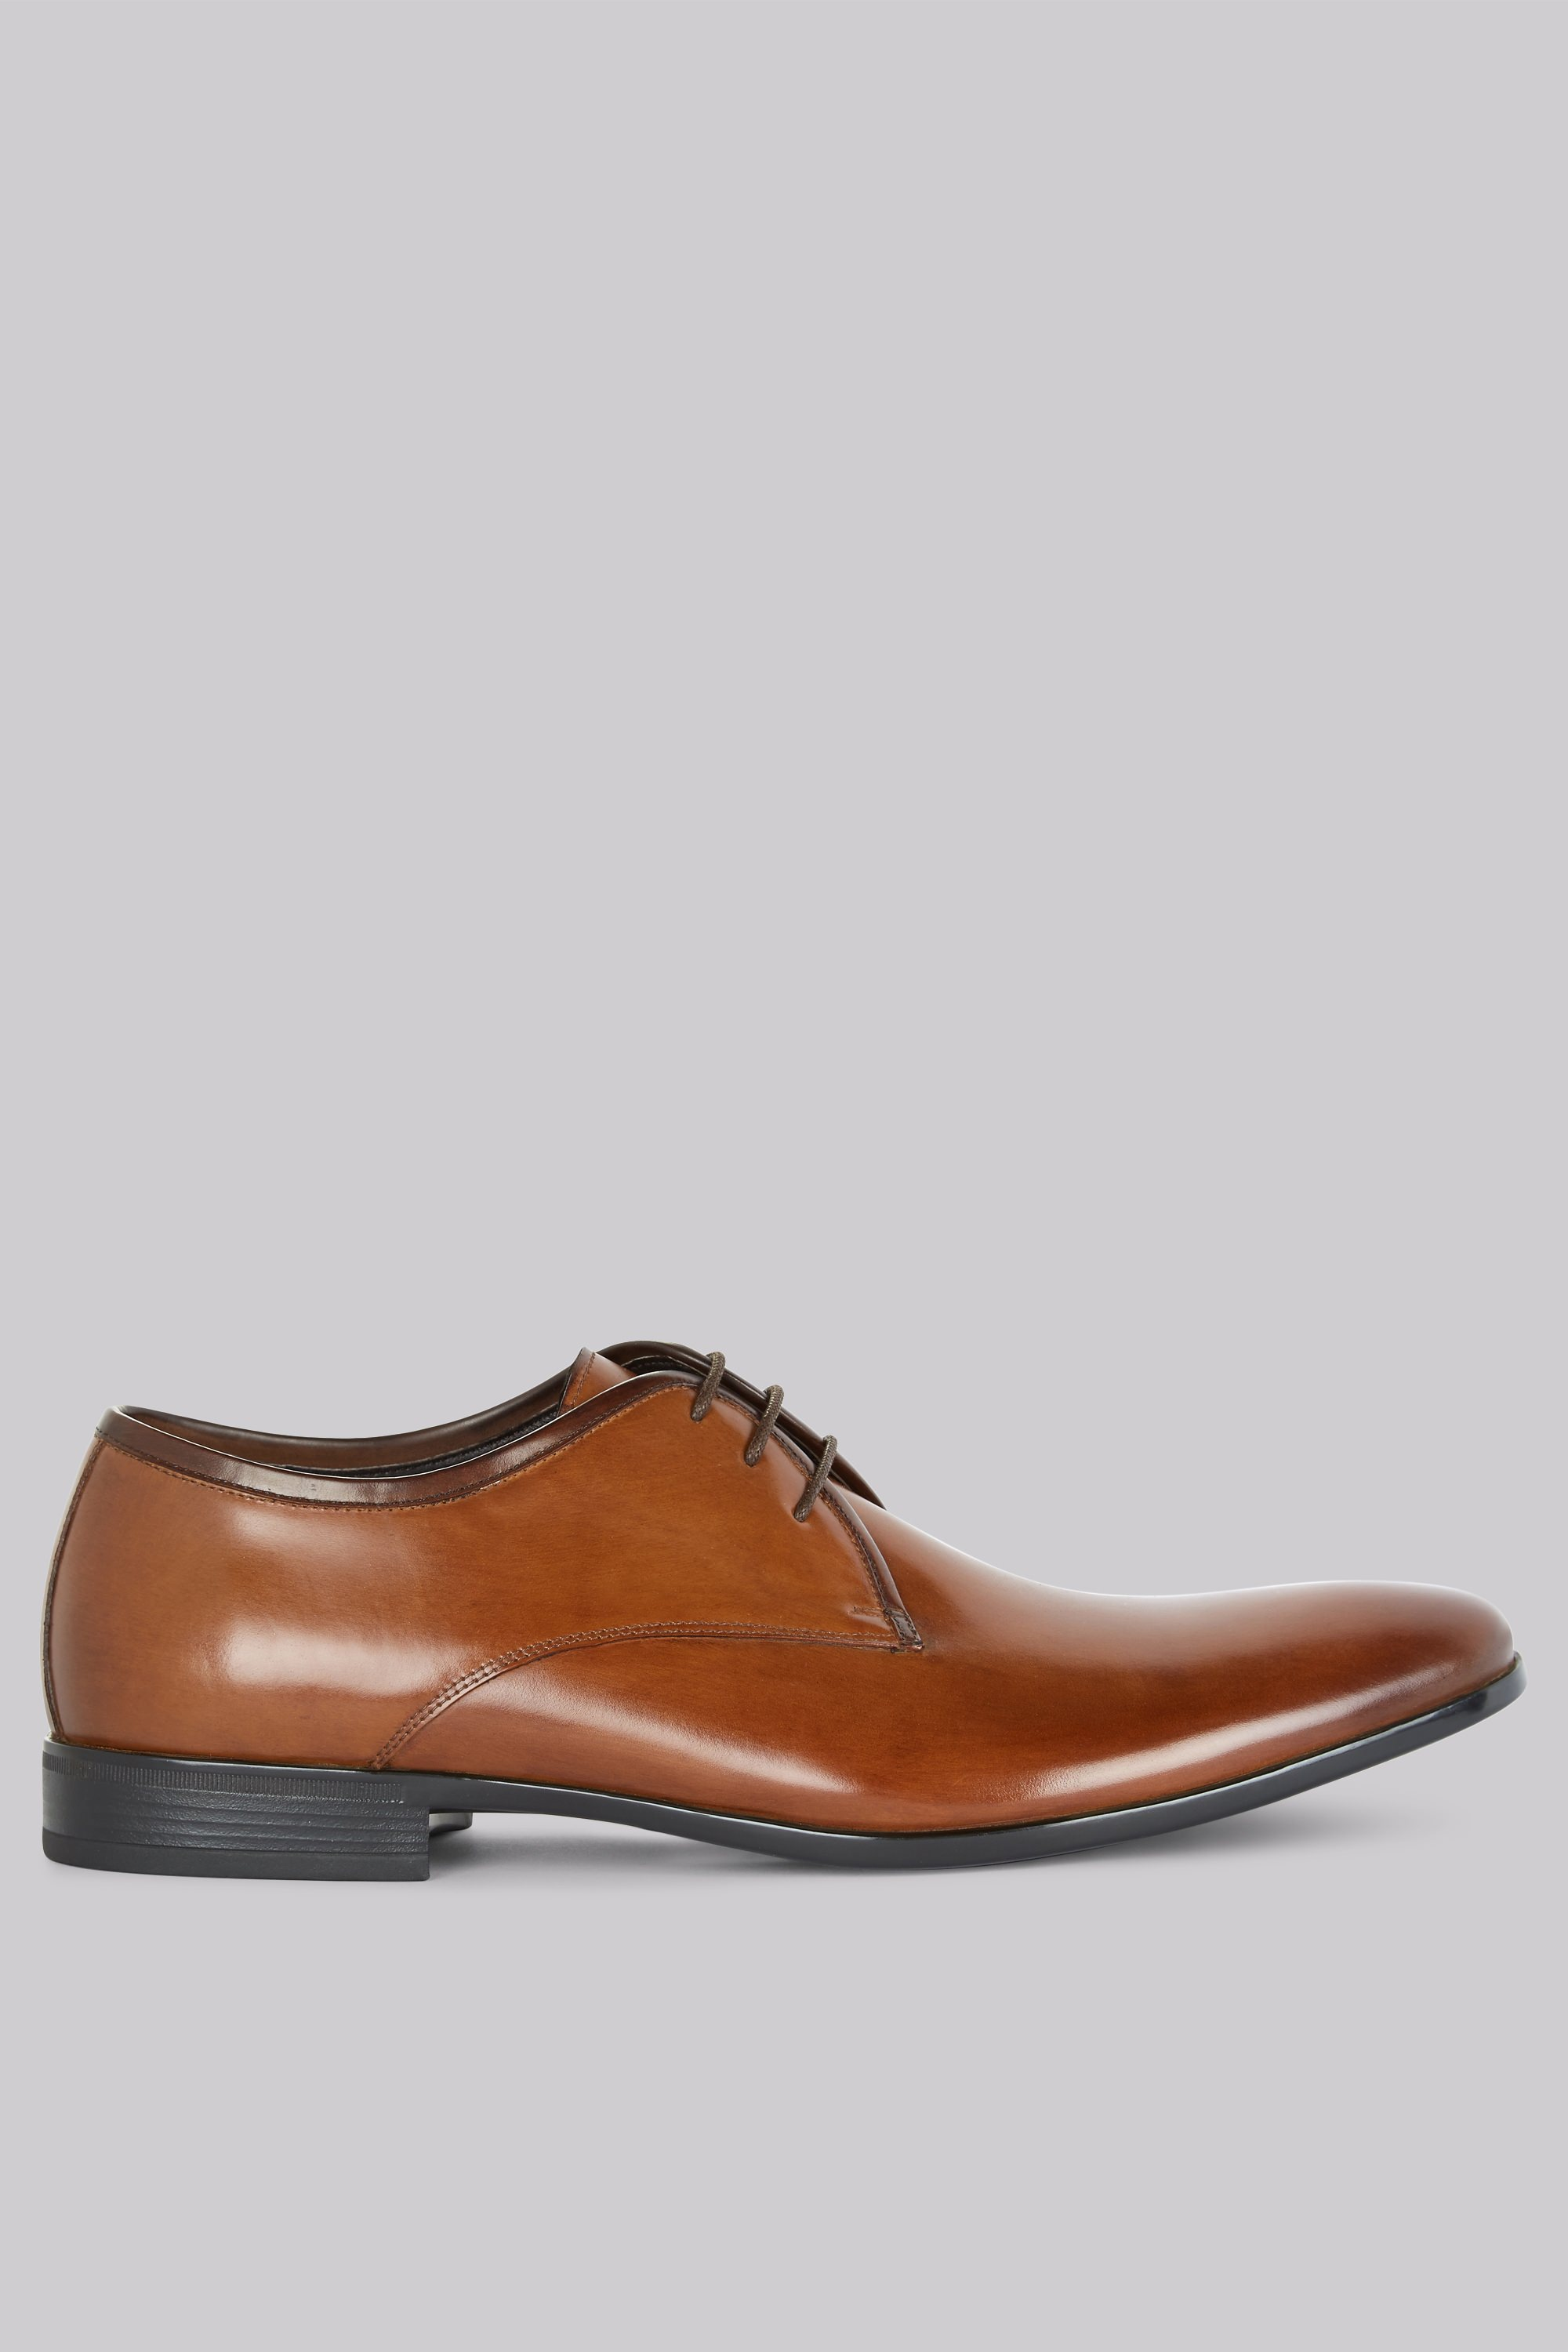 f247f0cb5293b7 John White Cadogan Tan Derby Shoes